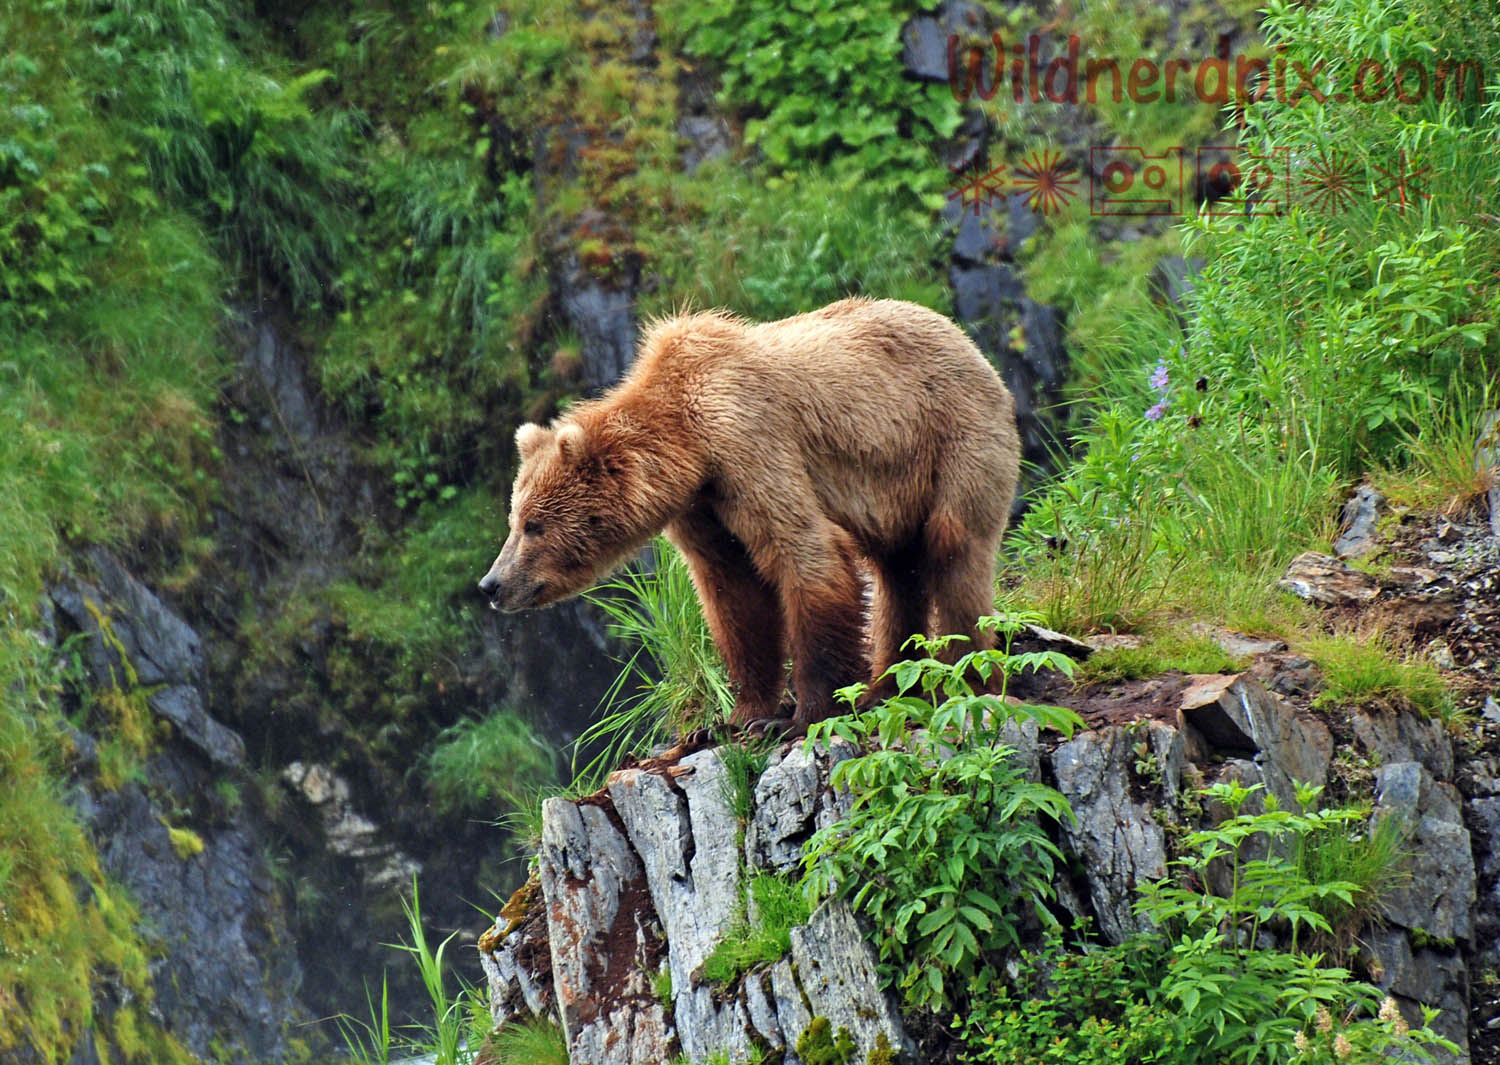 Kodiak Grizzly on Kodiak Island (AE5-065)